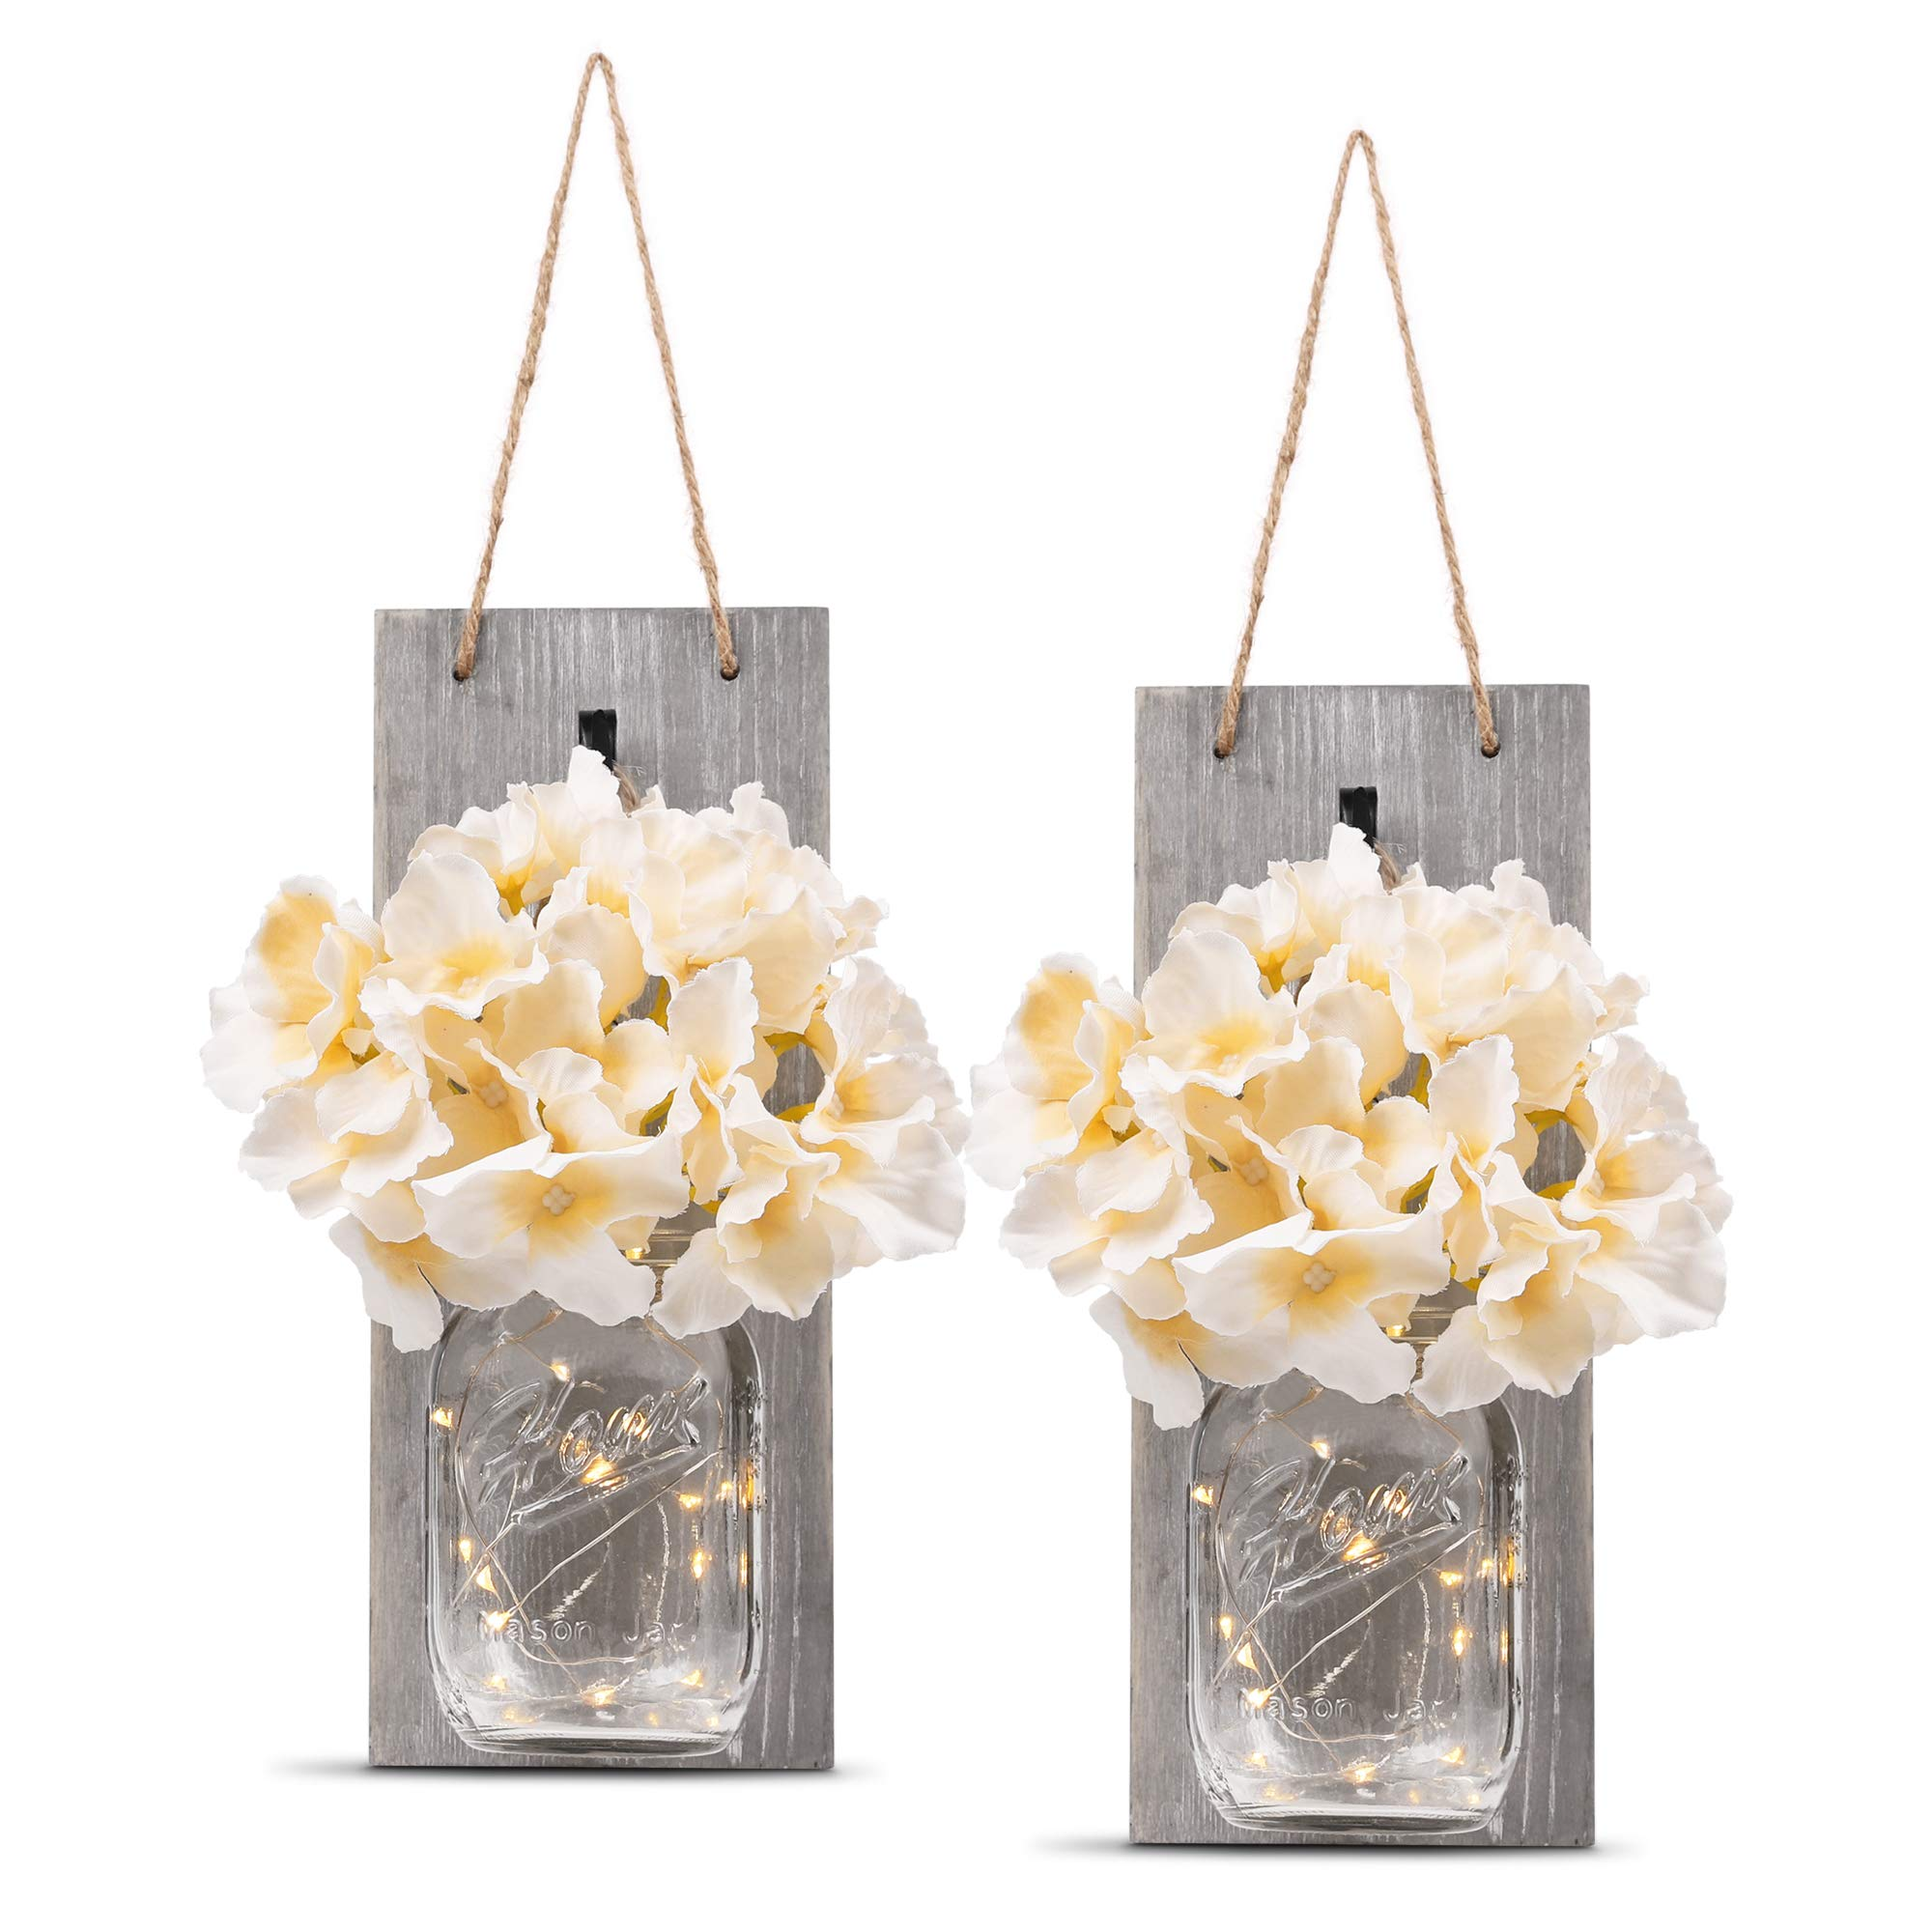 HOMKO Mason Jar Sconce with LED Fairy Lights and Flowers - Rustic Hanging Mason Jar Light Wall Decor Farmhouse Home Decoration (Set of 2) by HOMKO